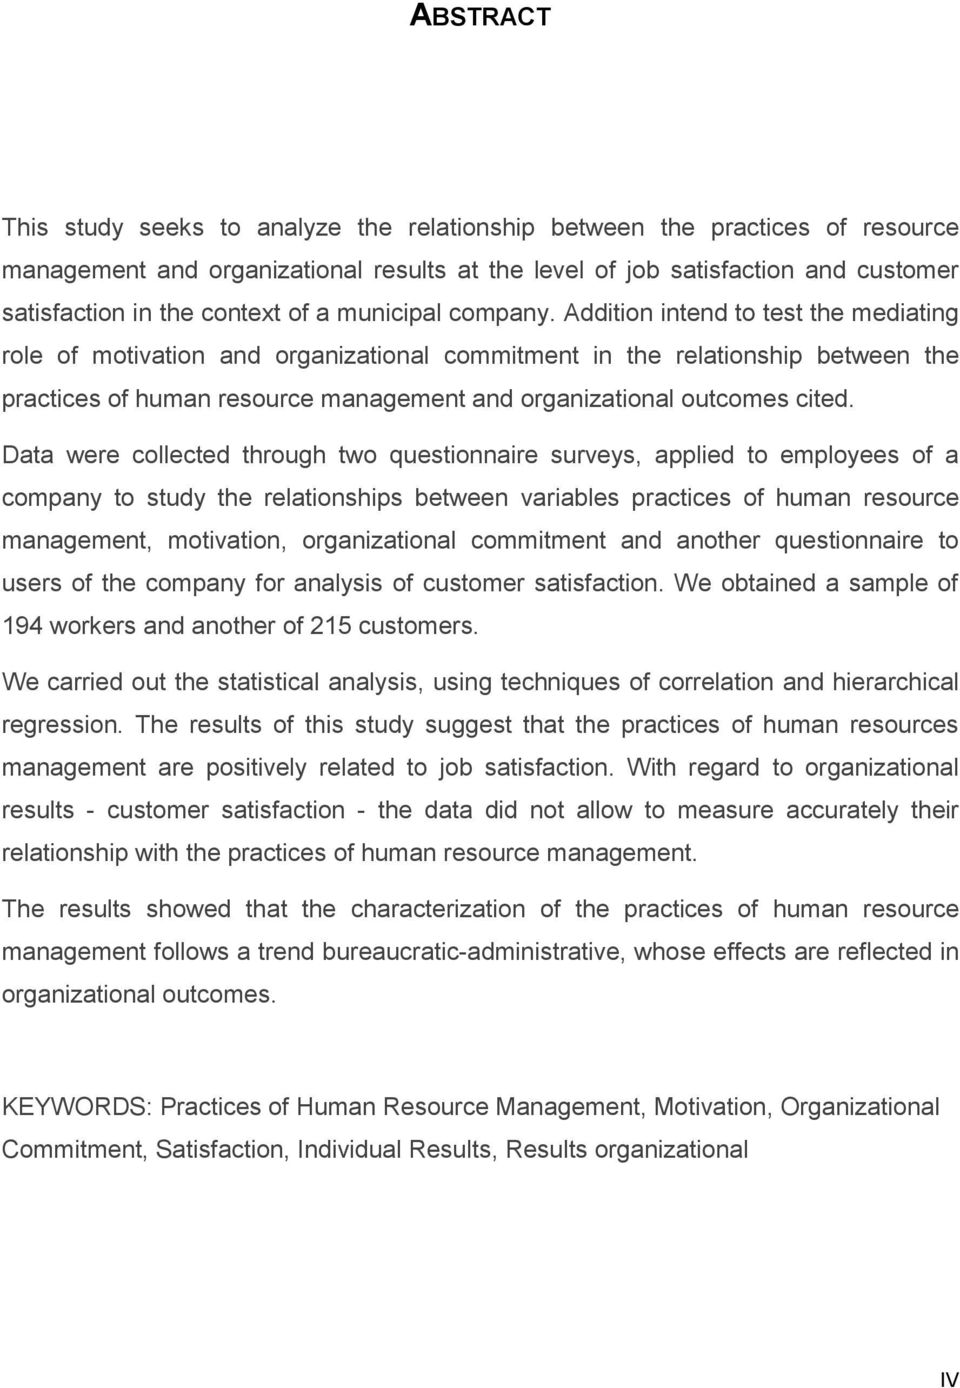 Addition intend to test the mediating role of motivation and organizational commitment in the relationship between the practices of human resource management and organizational outcomes cited.